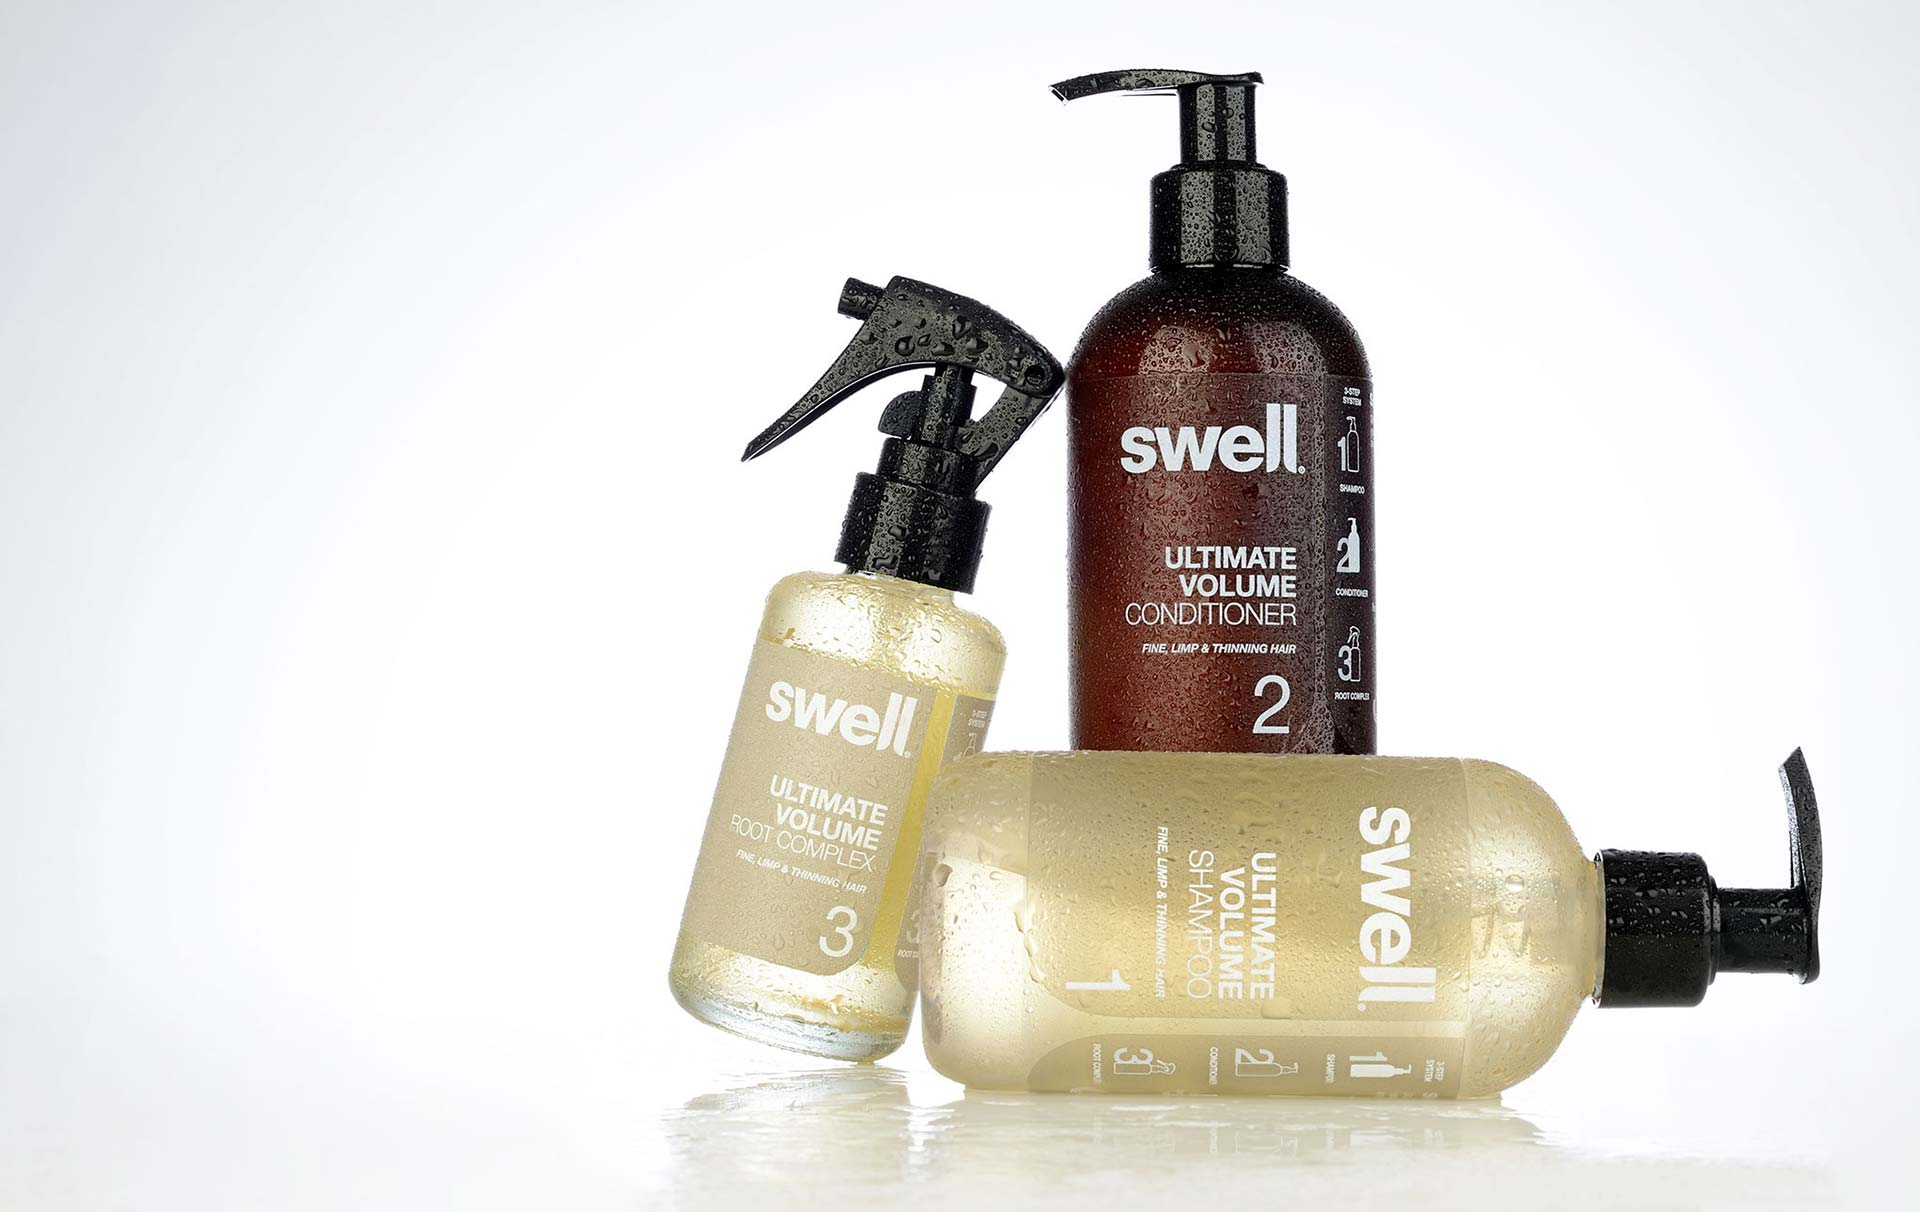 Swell Hair care packaging design. Shampoo, conditioner and root complex. Packaging design company - Flipflop Design.